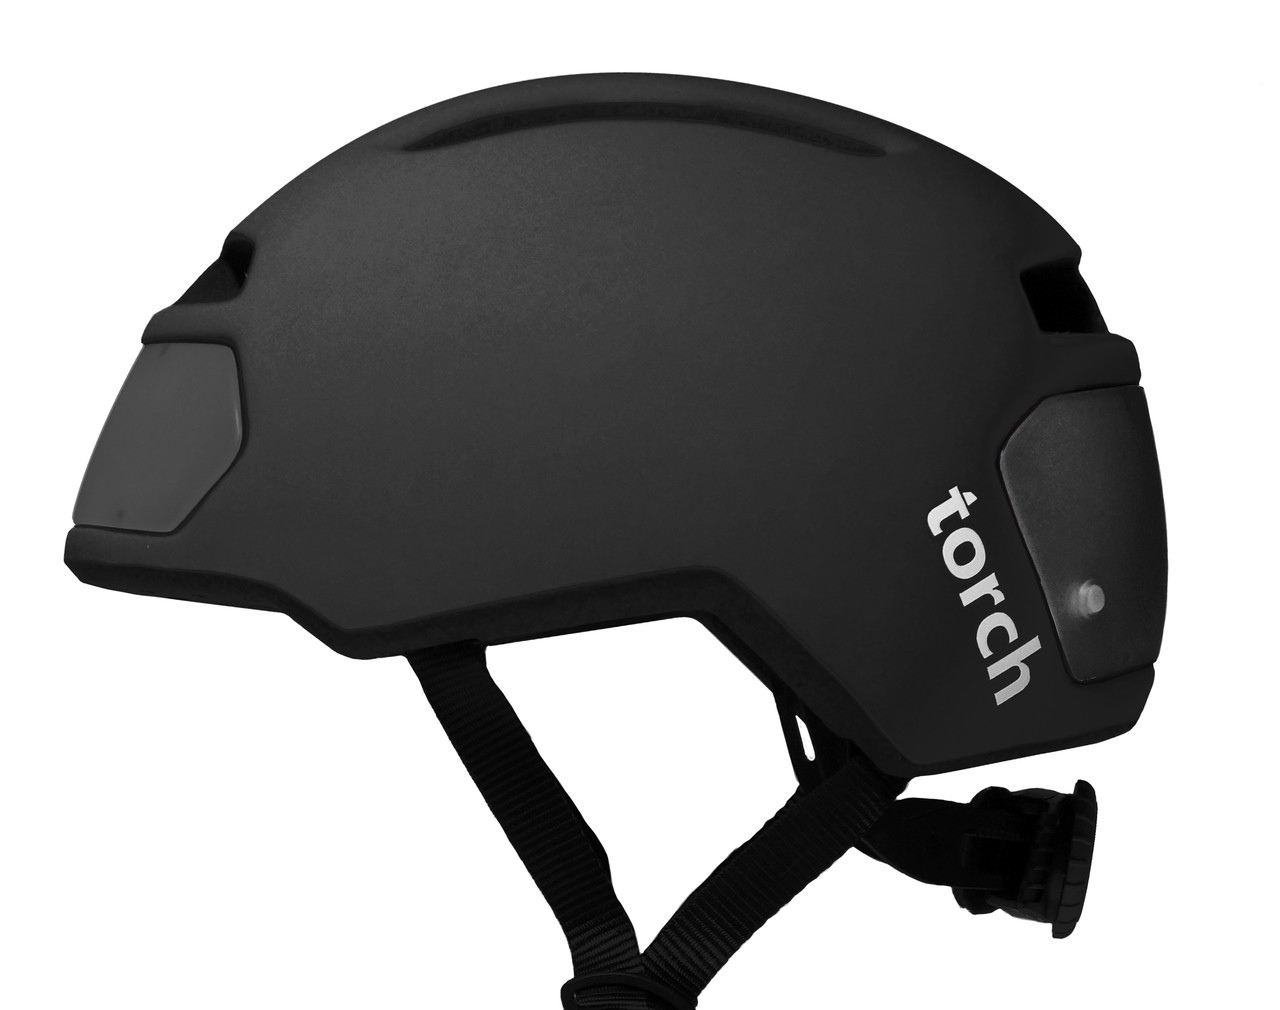 A bicycle helmet for a stylish man?